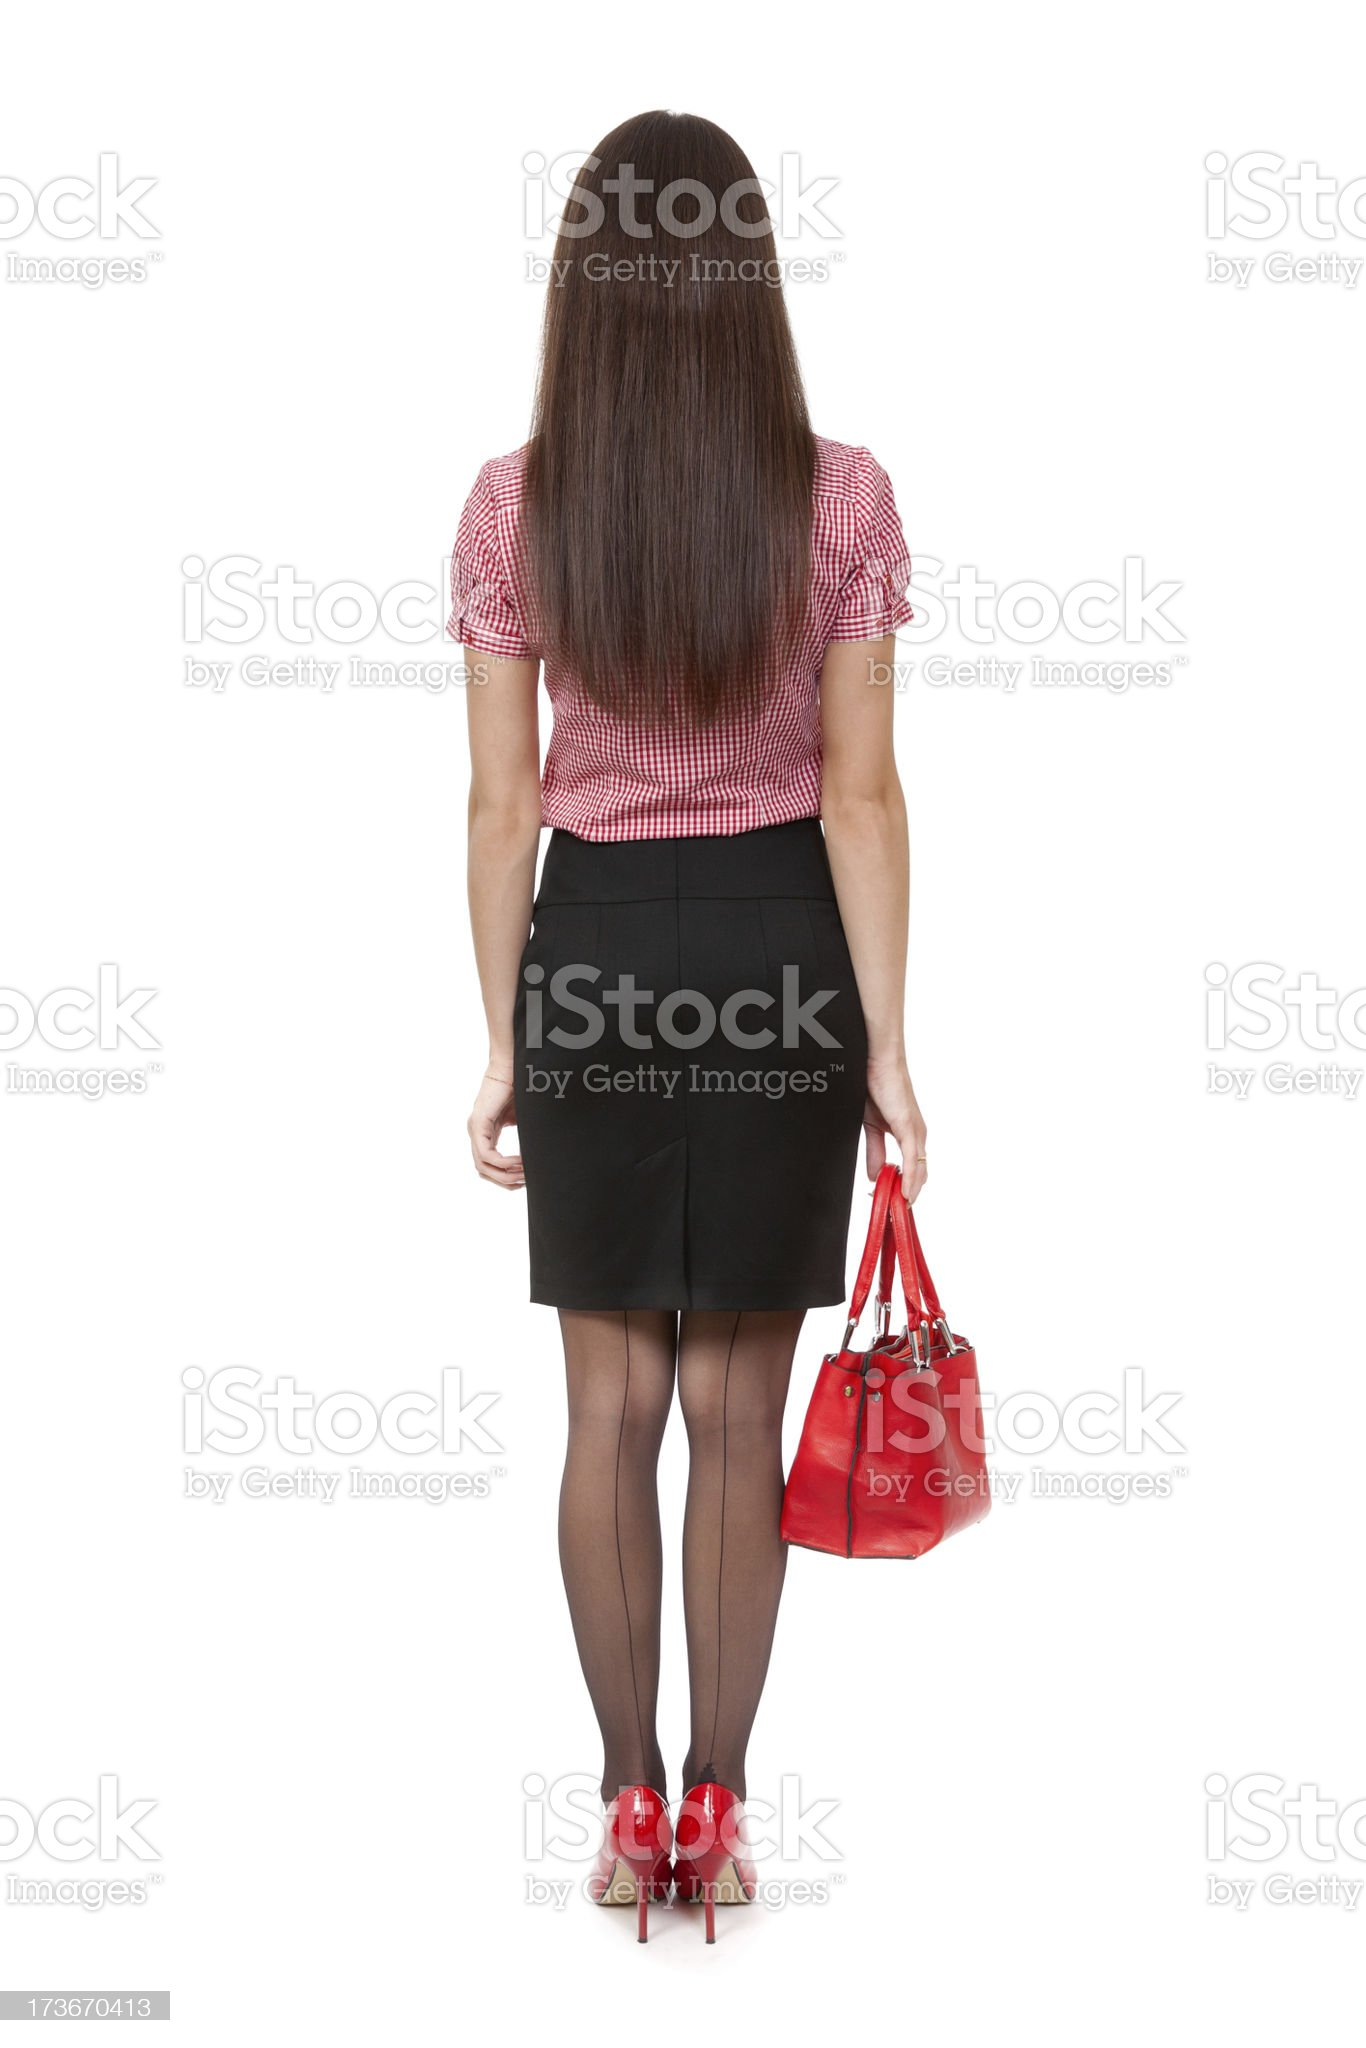 slender girl with a bag in the studio royalty-free stock photo